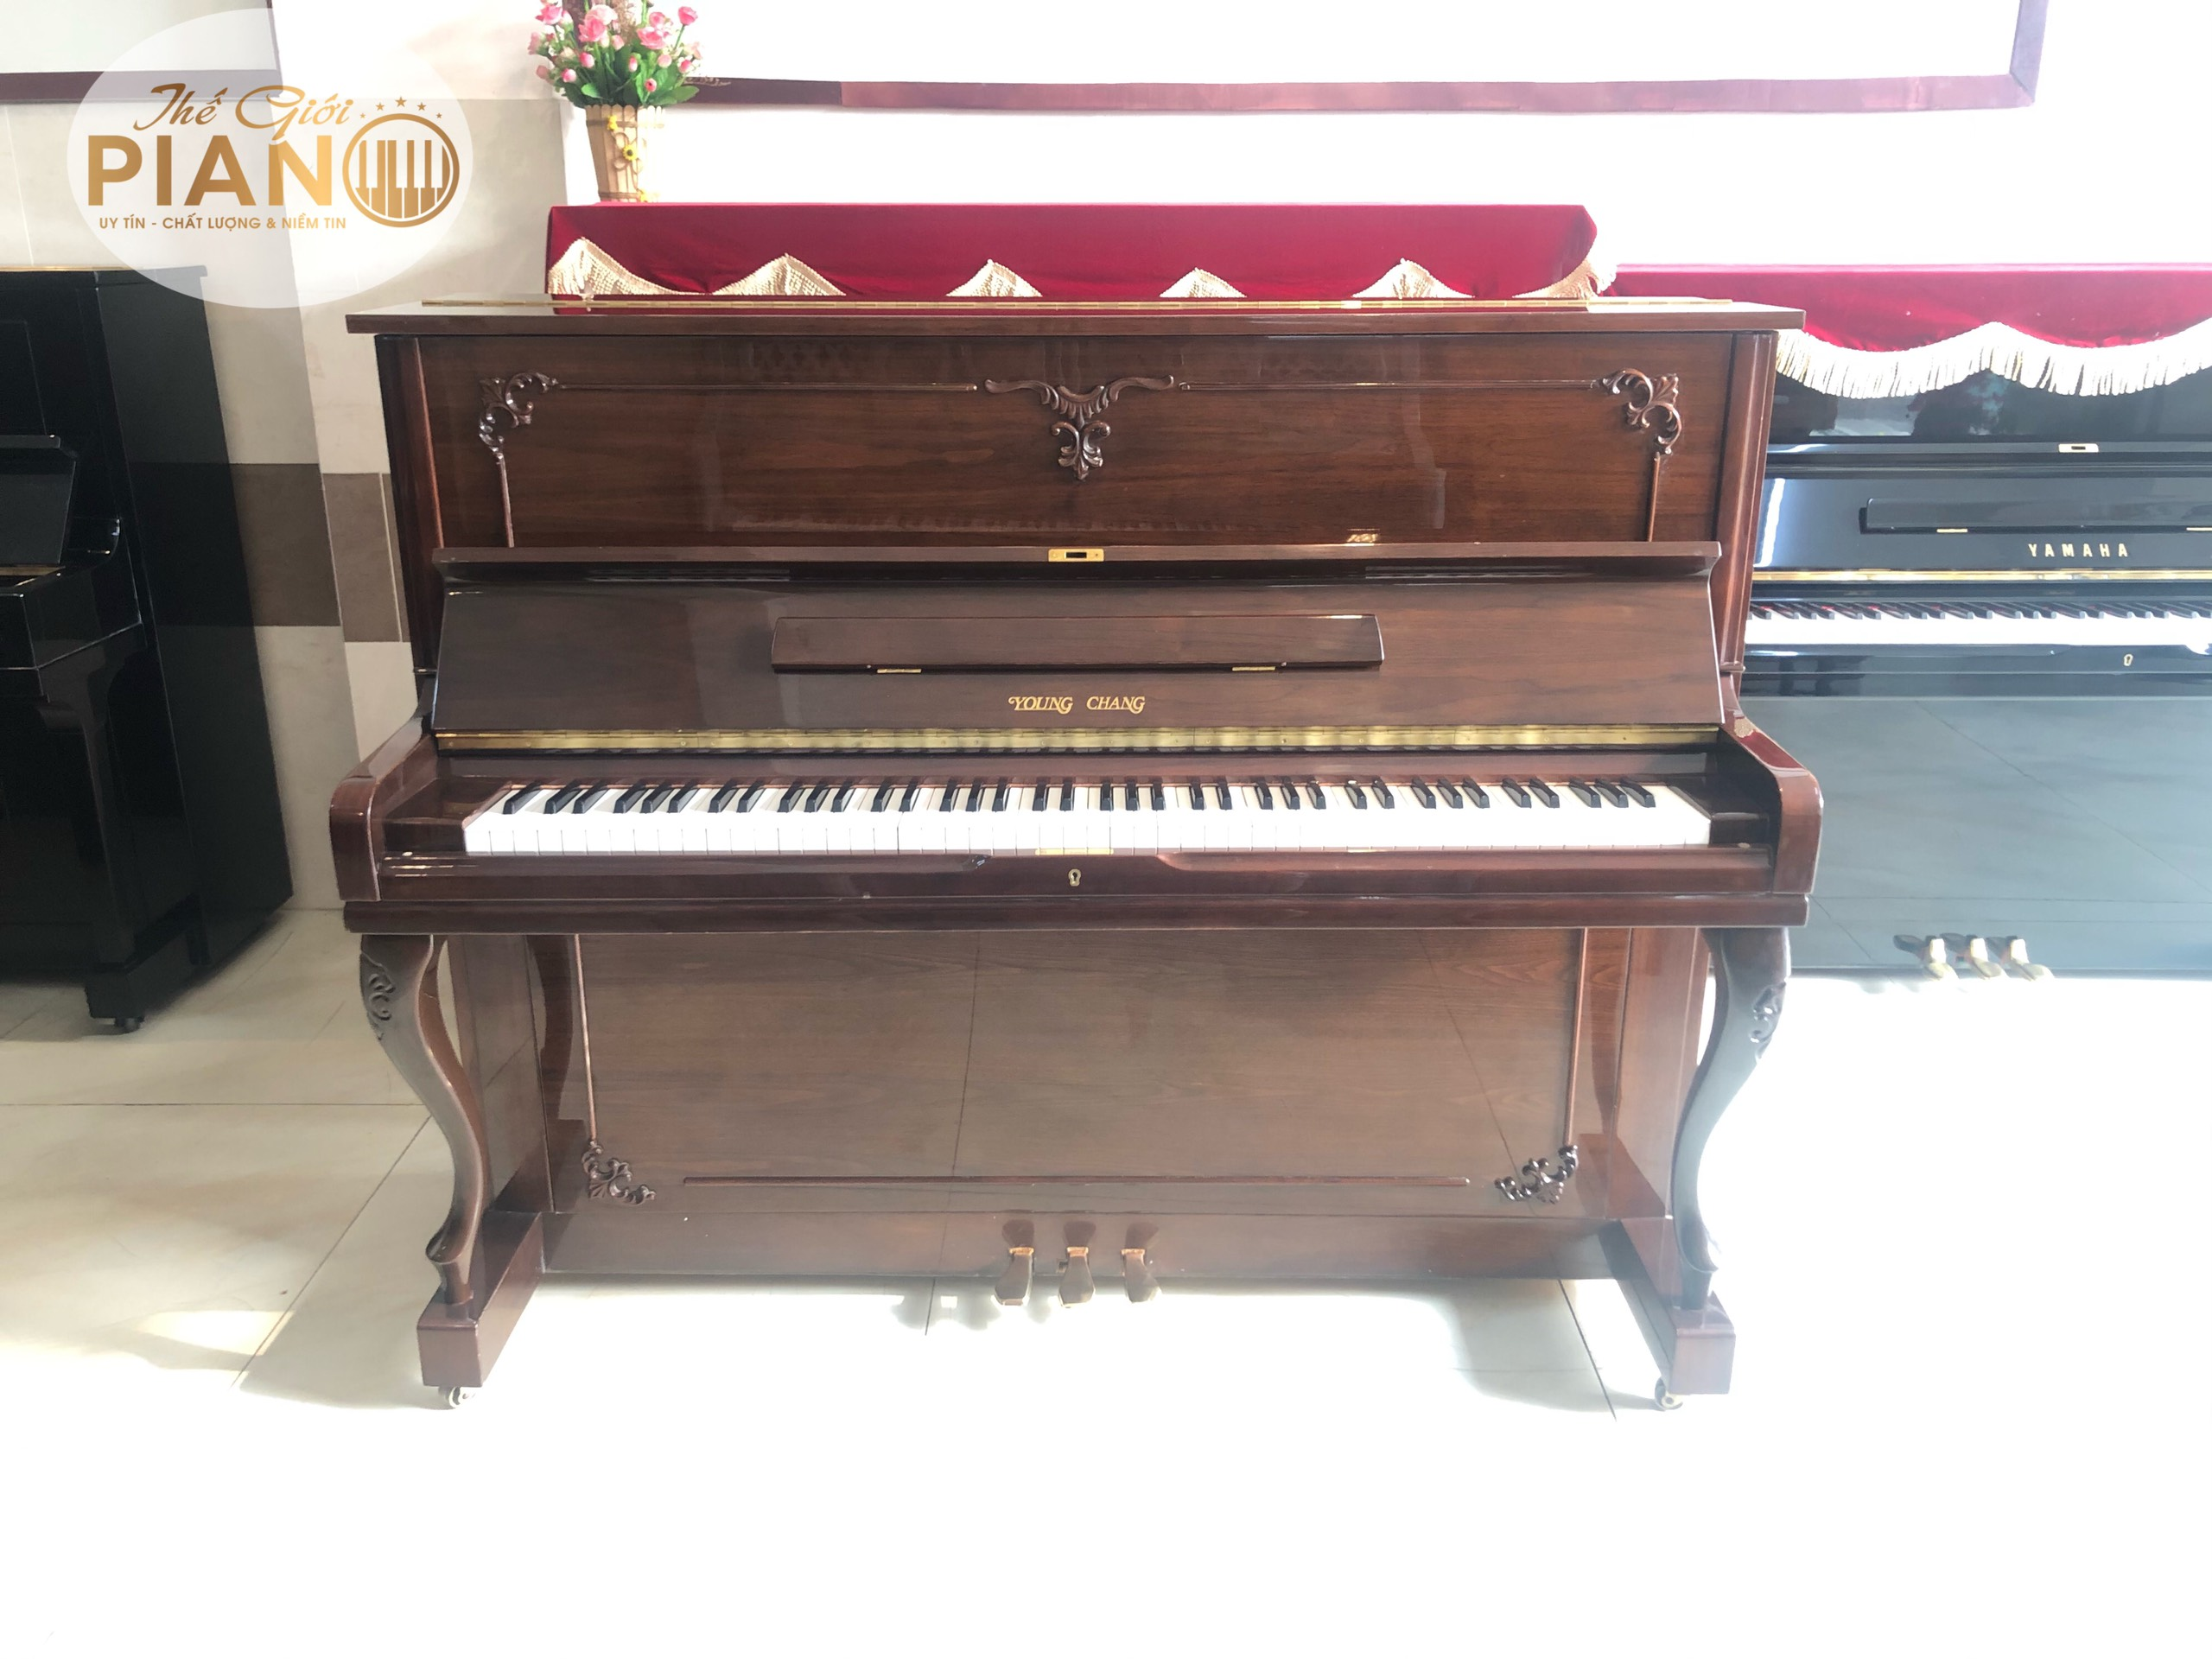 z2312809520728 fc2a38e0319f0b939b55036074f6b00f YOUNG CHANG PIANO